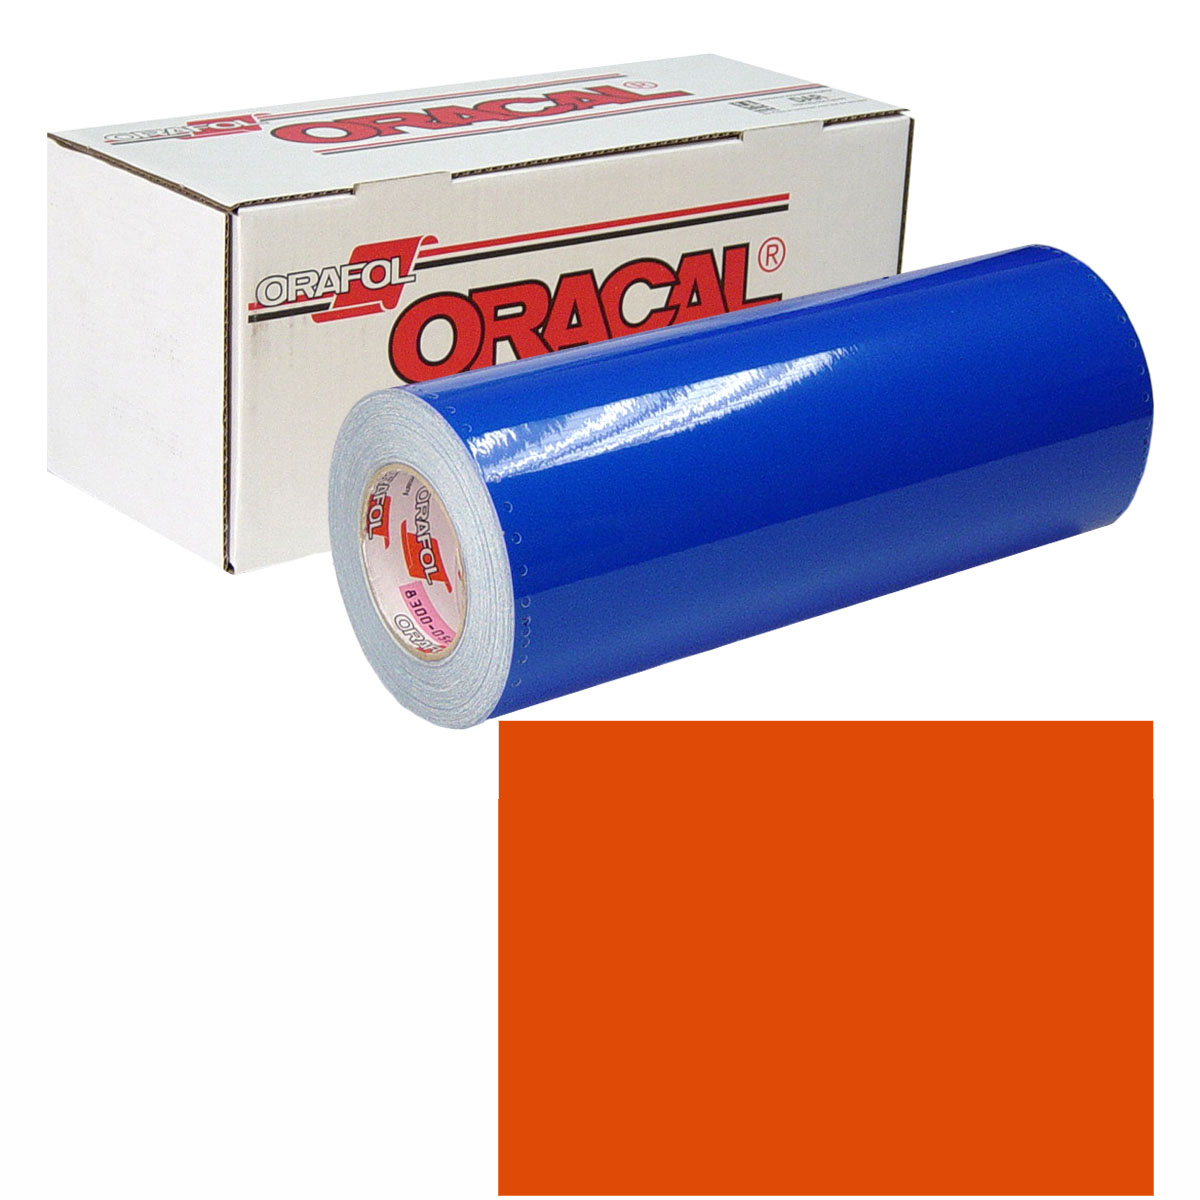 ORACAL 631 30in X 50yd 034 Orange